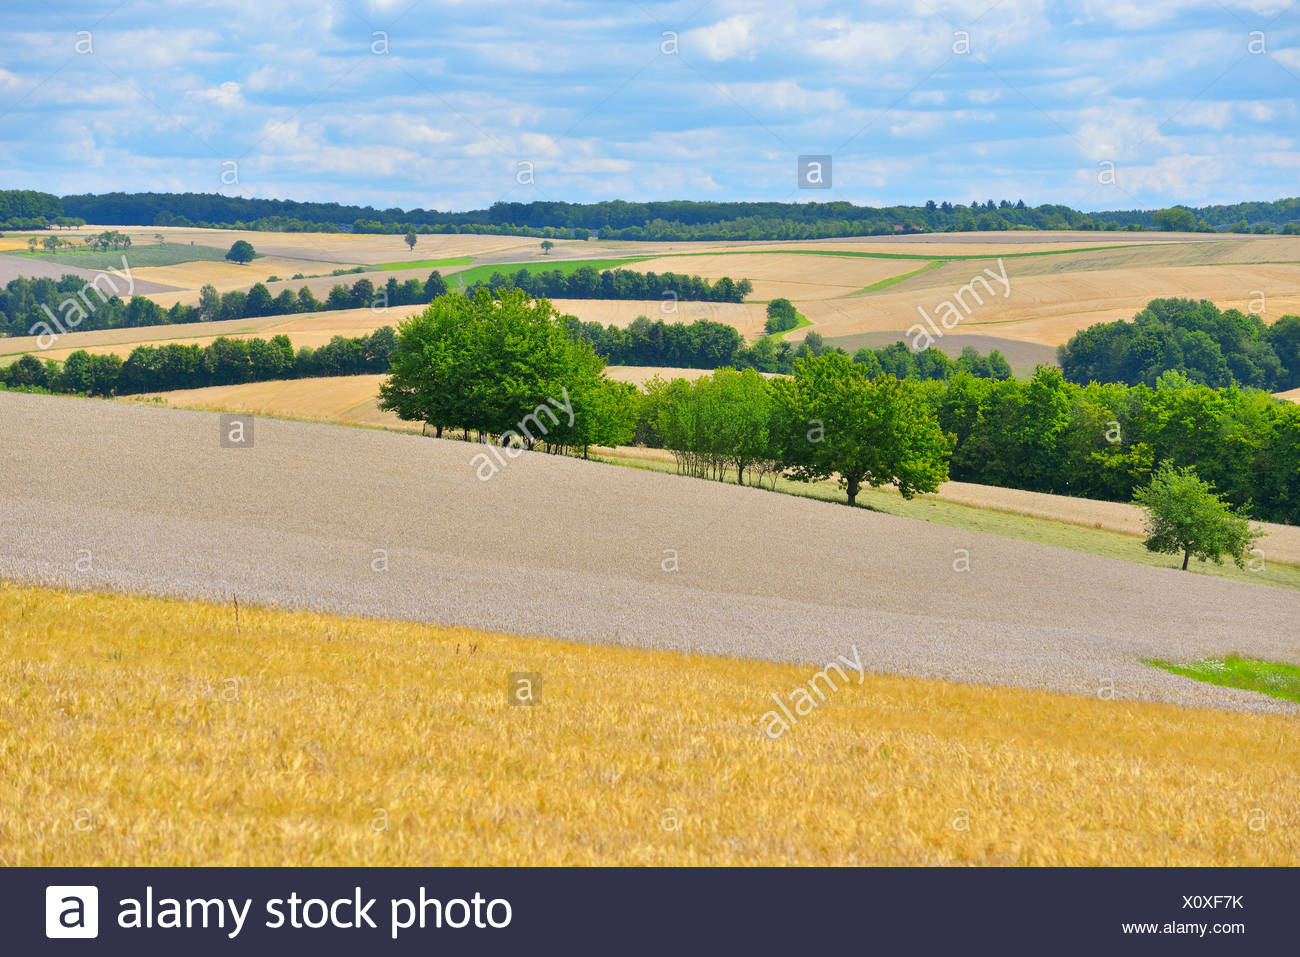 countryside with wheat field in the summer, Germany, Bavaria, Franken, Franconia, Arnstein - Stock Image